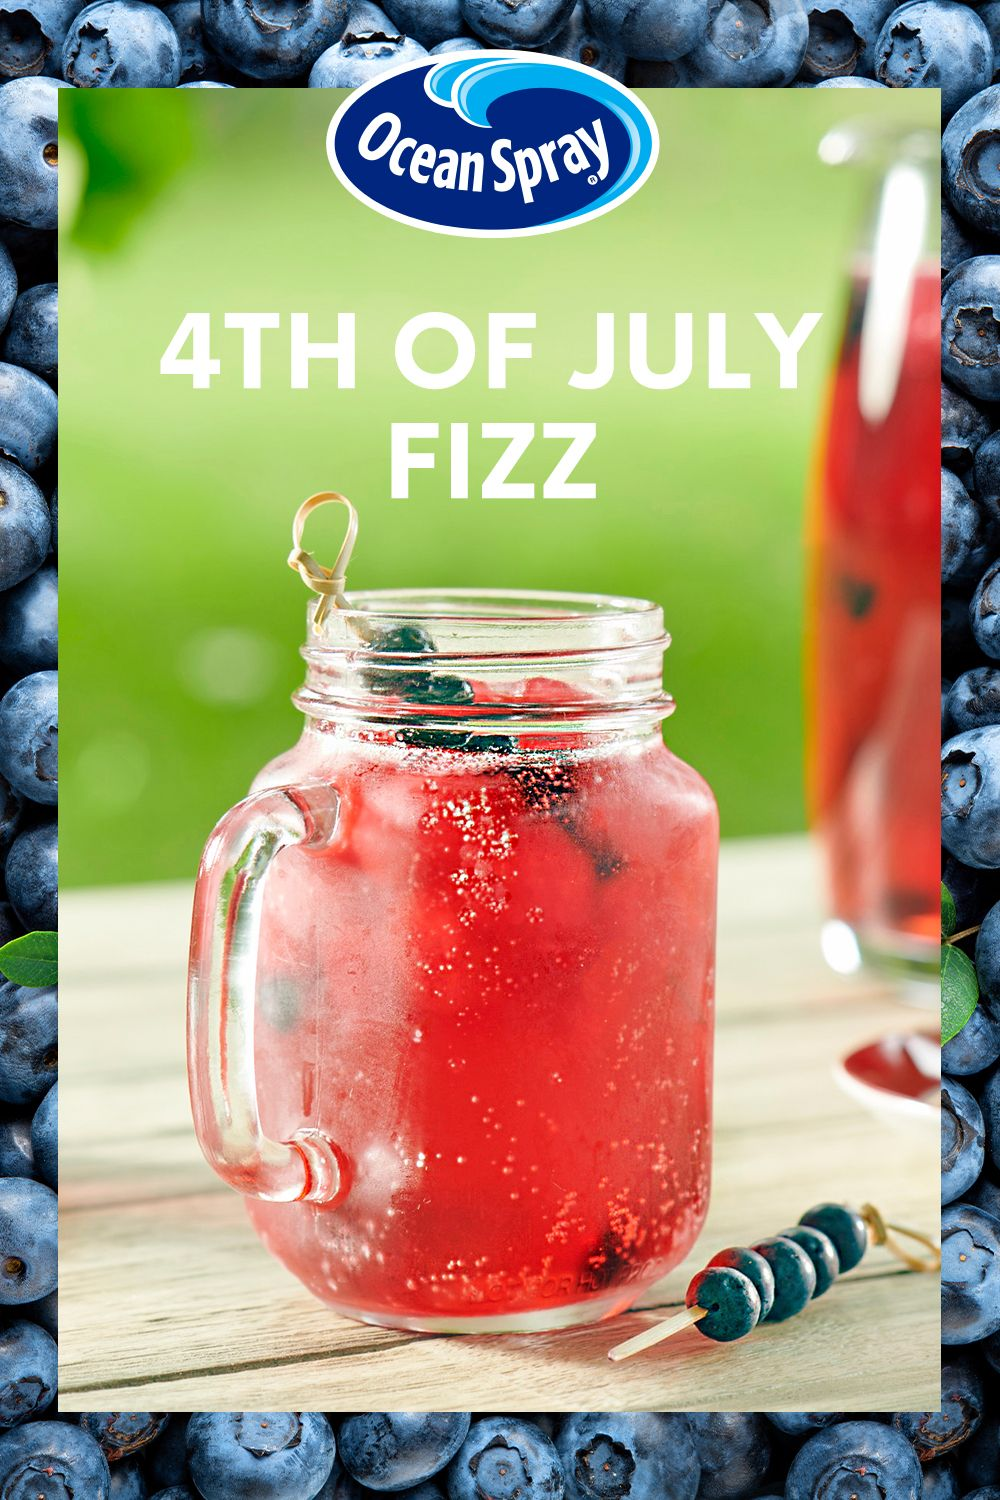 Fourth Of July Fizz Recipe In 2020 Alcohol Drink Recipes Mixed Drinks Recipes Holiday Drinks